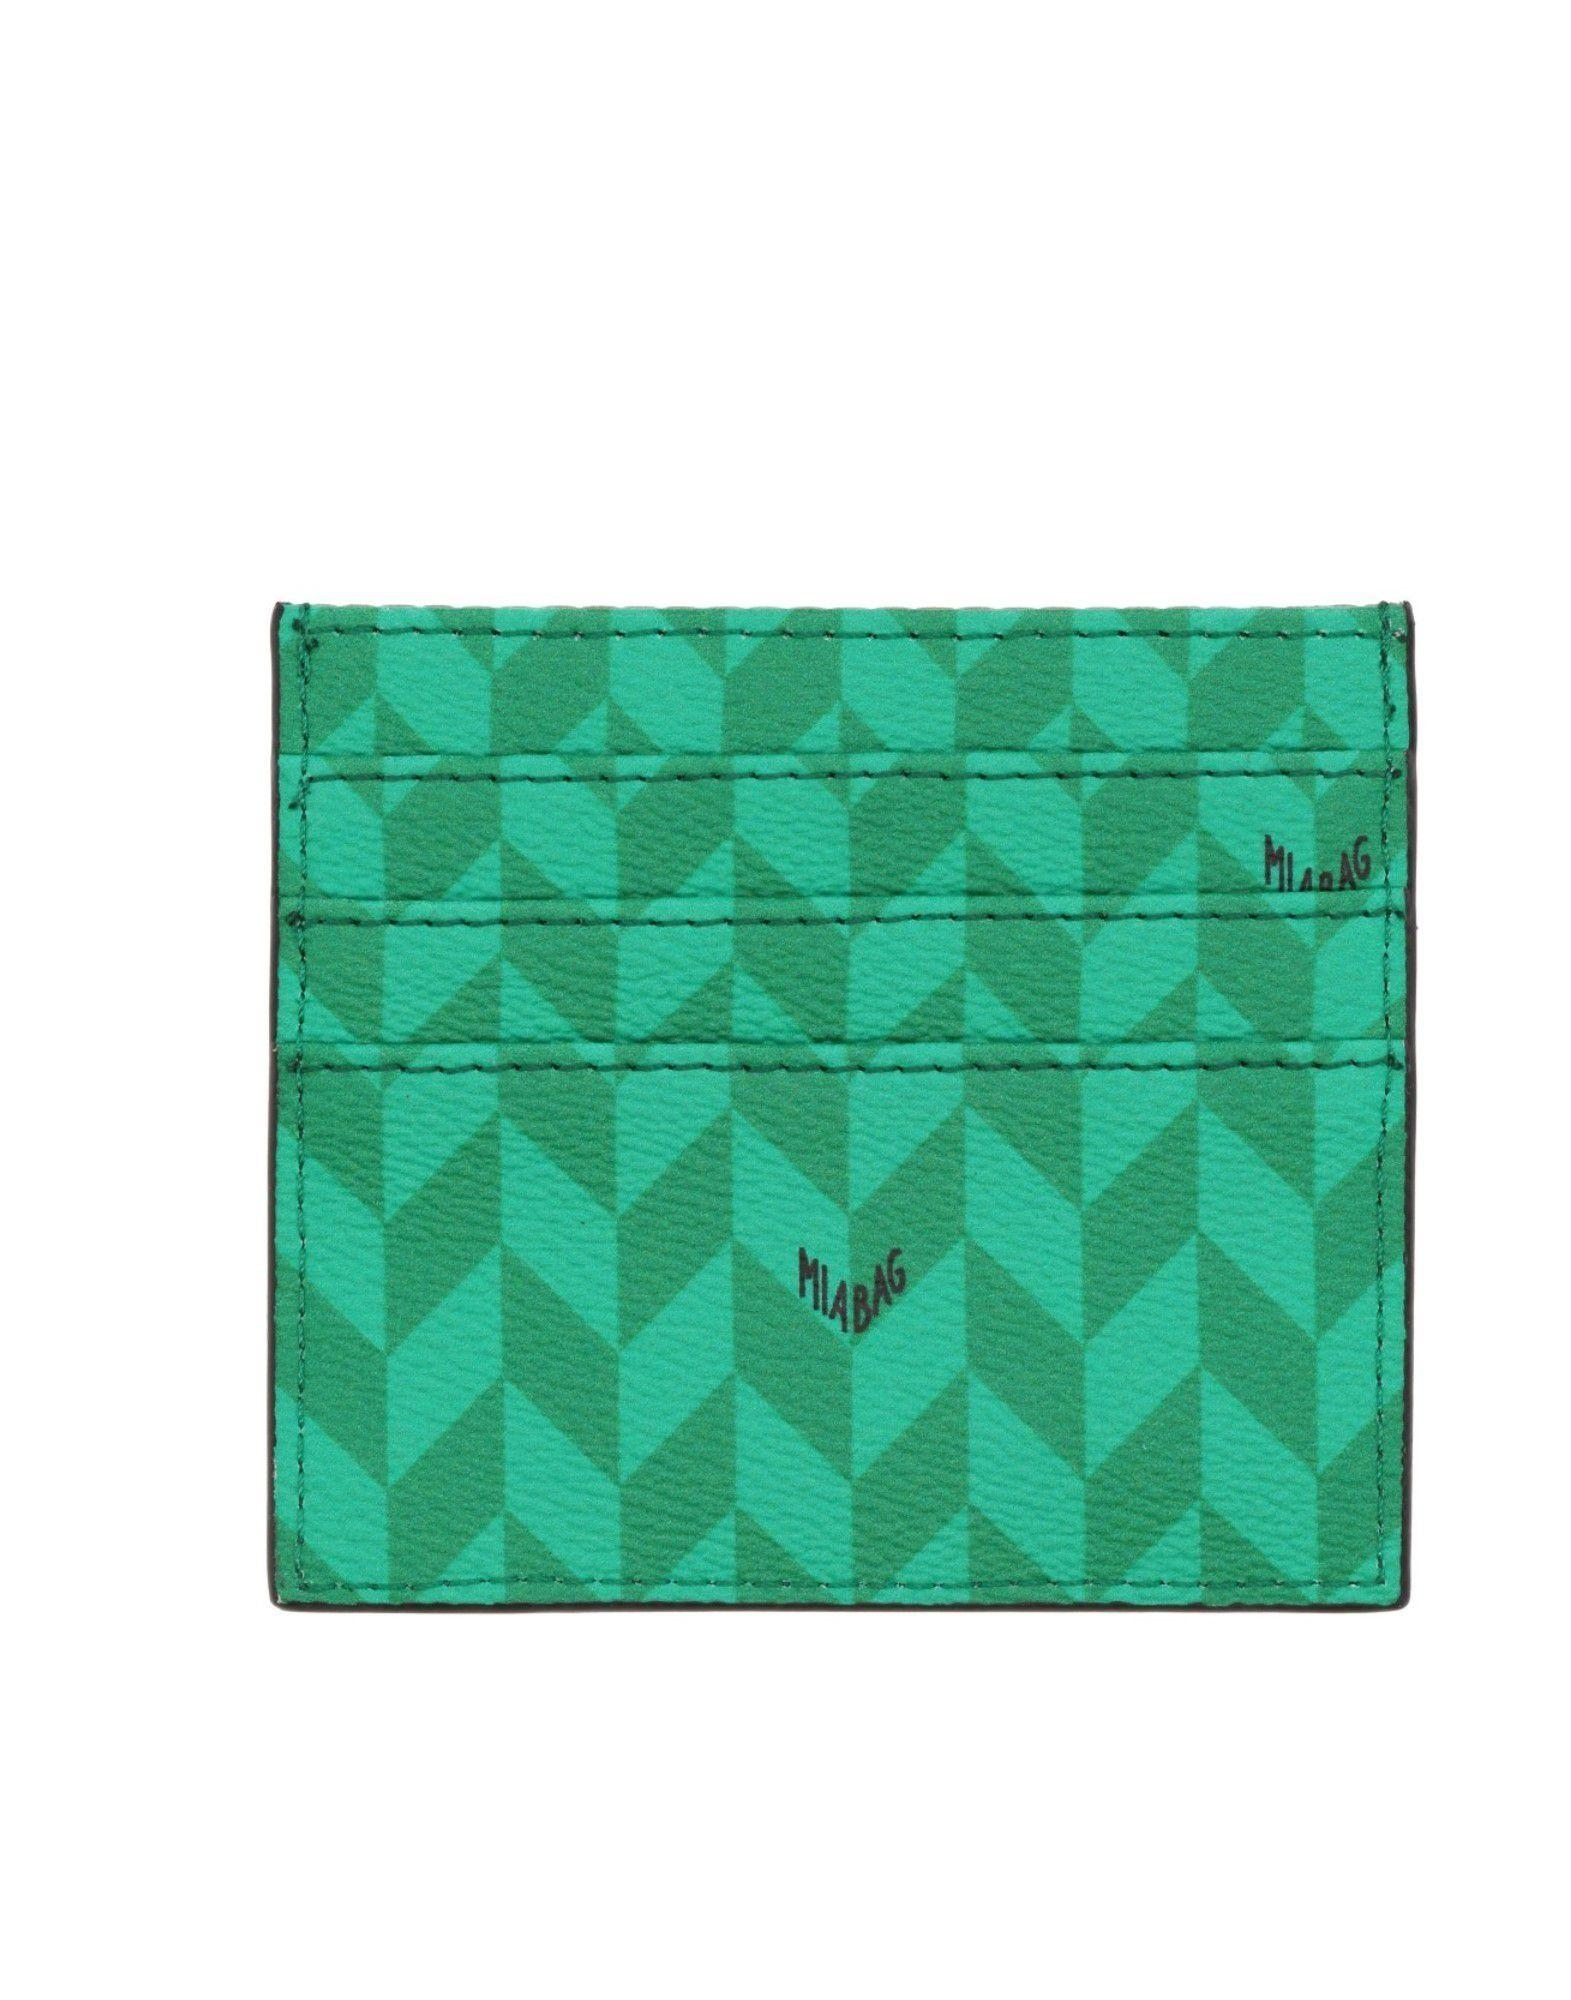 Mia Bag Document Holder In Green